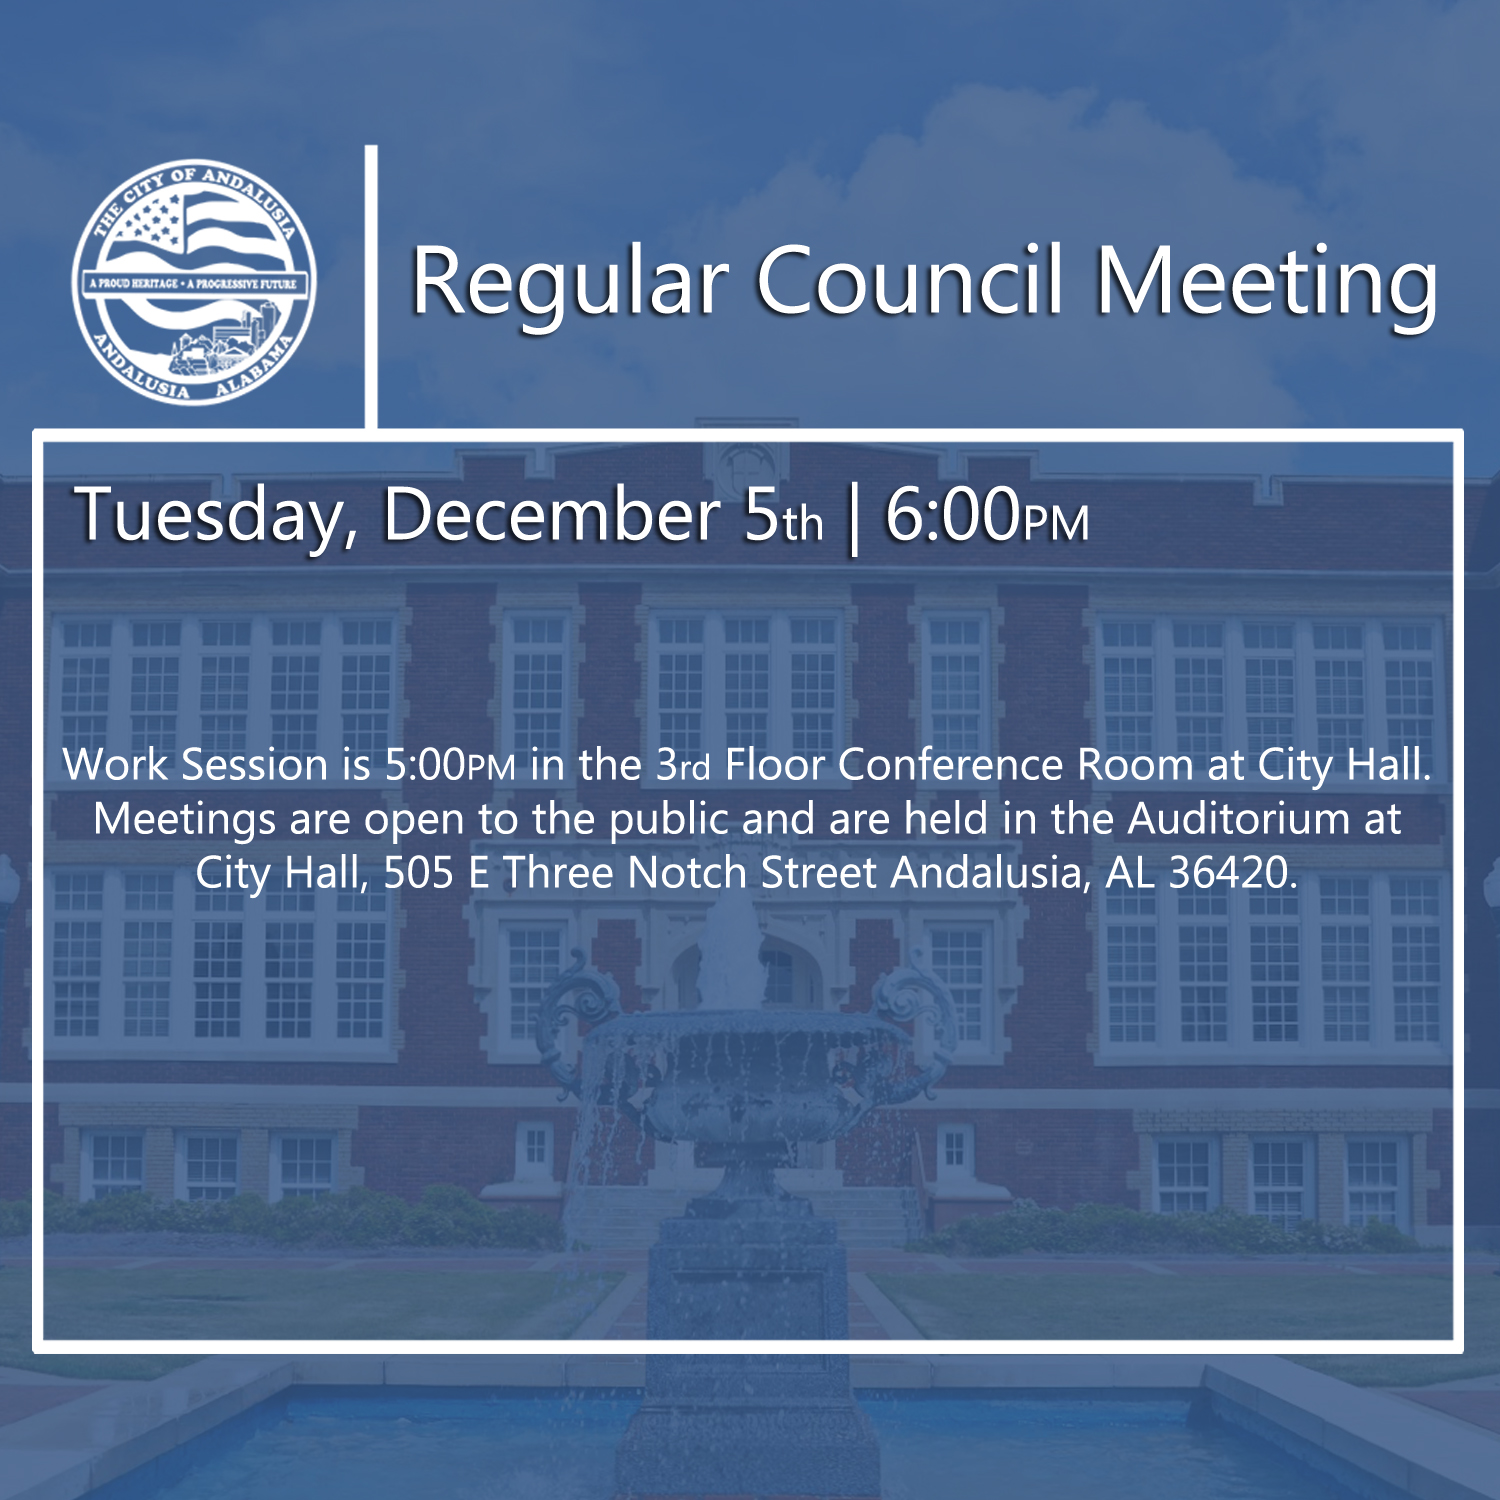 Website Regular Council Meeting Dec 5